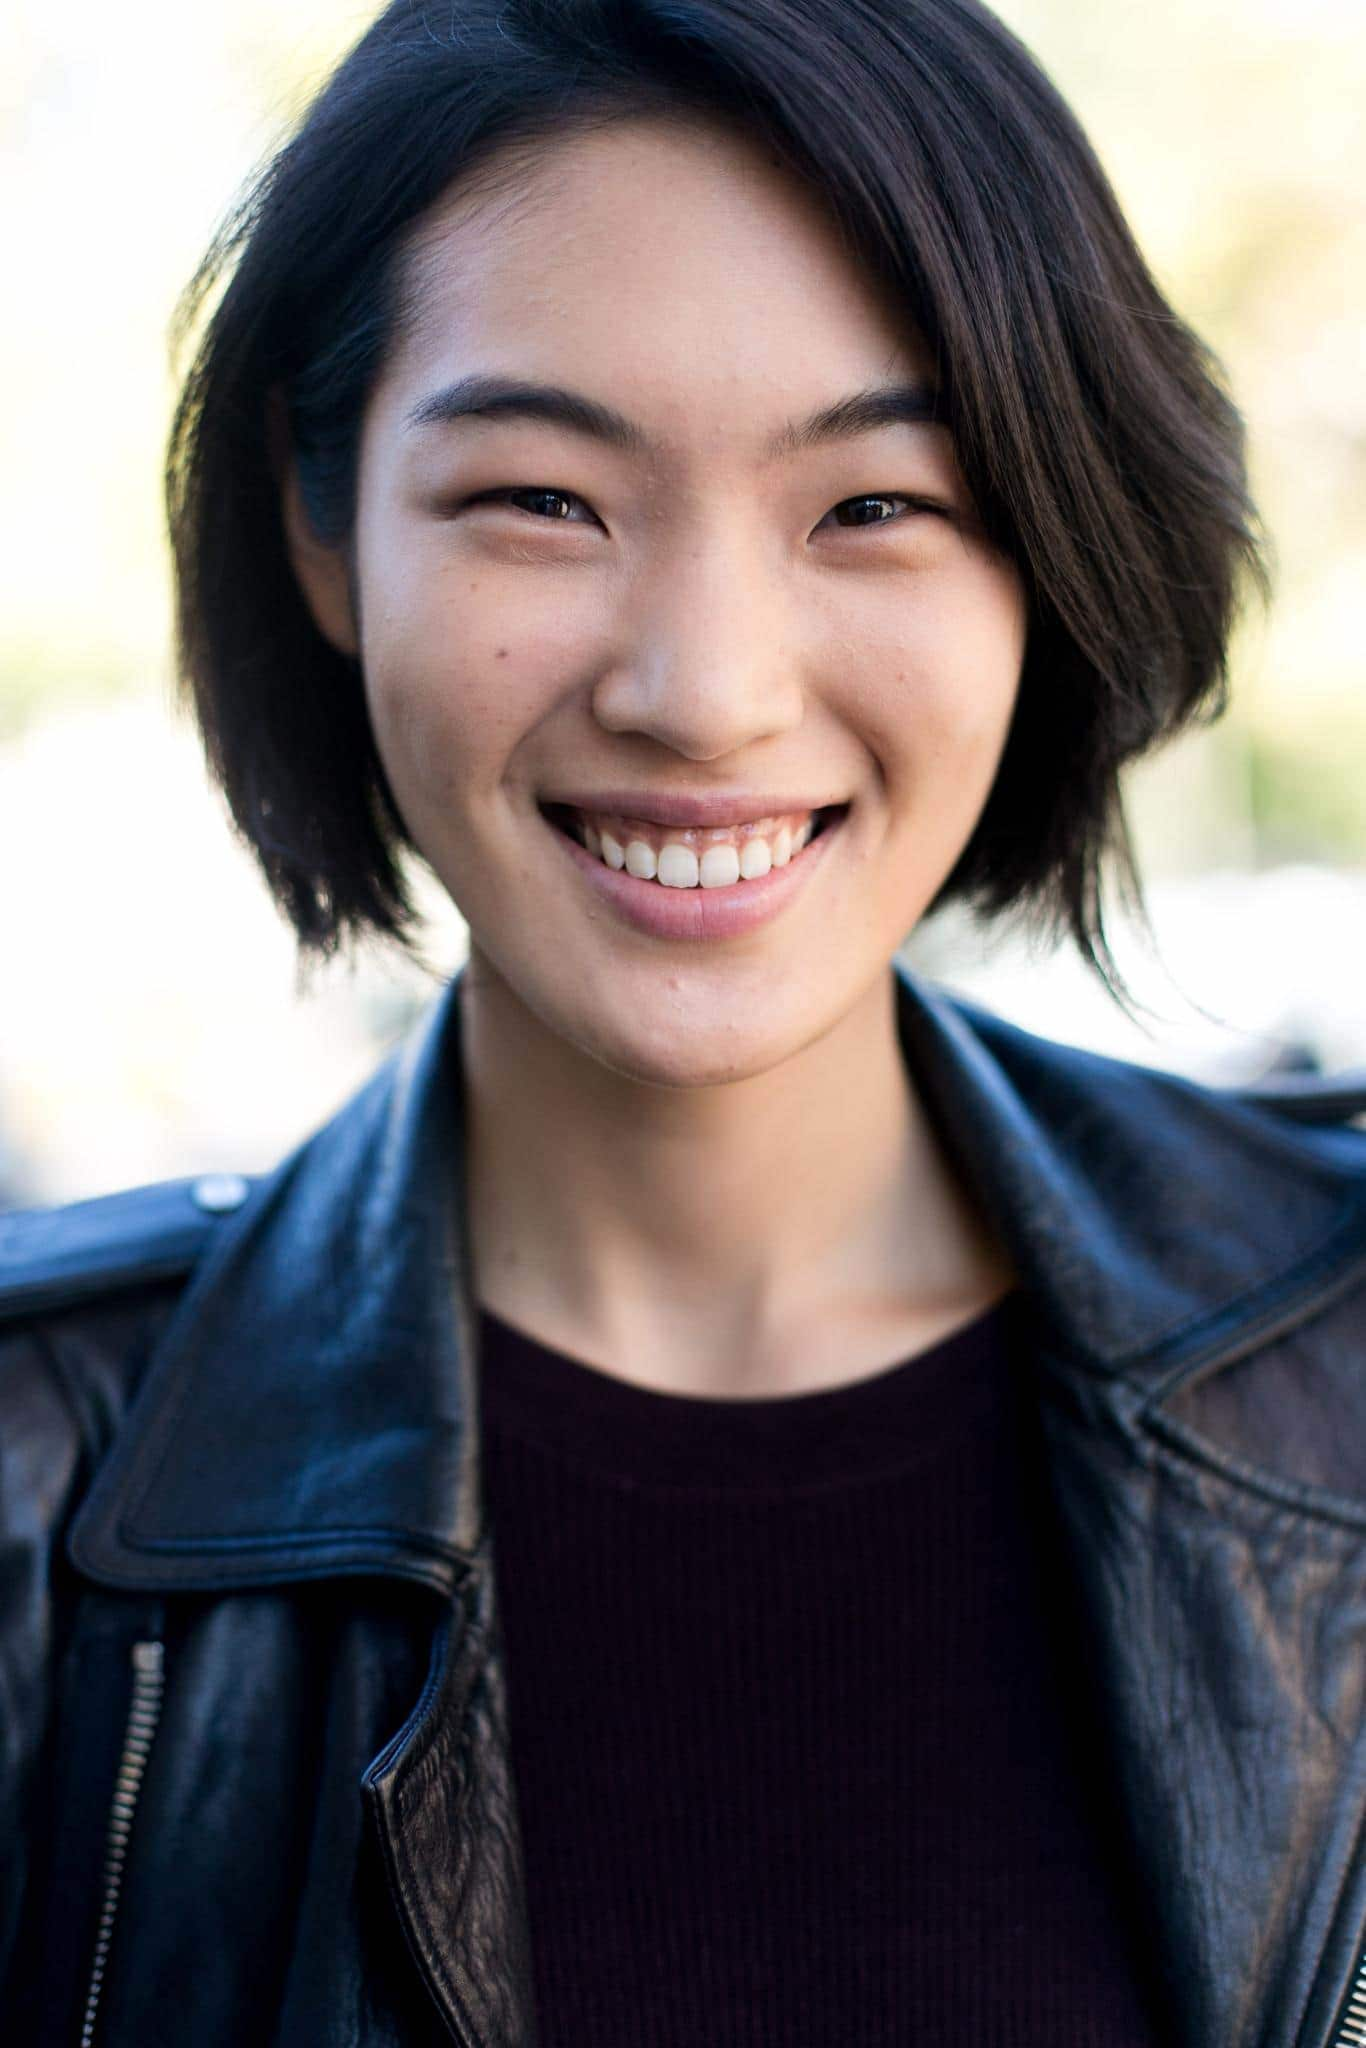 Asian Hairstyles For 2018 - Short Asian Hair For You 4